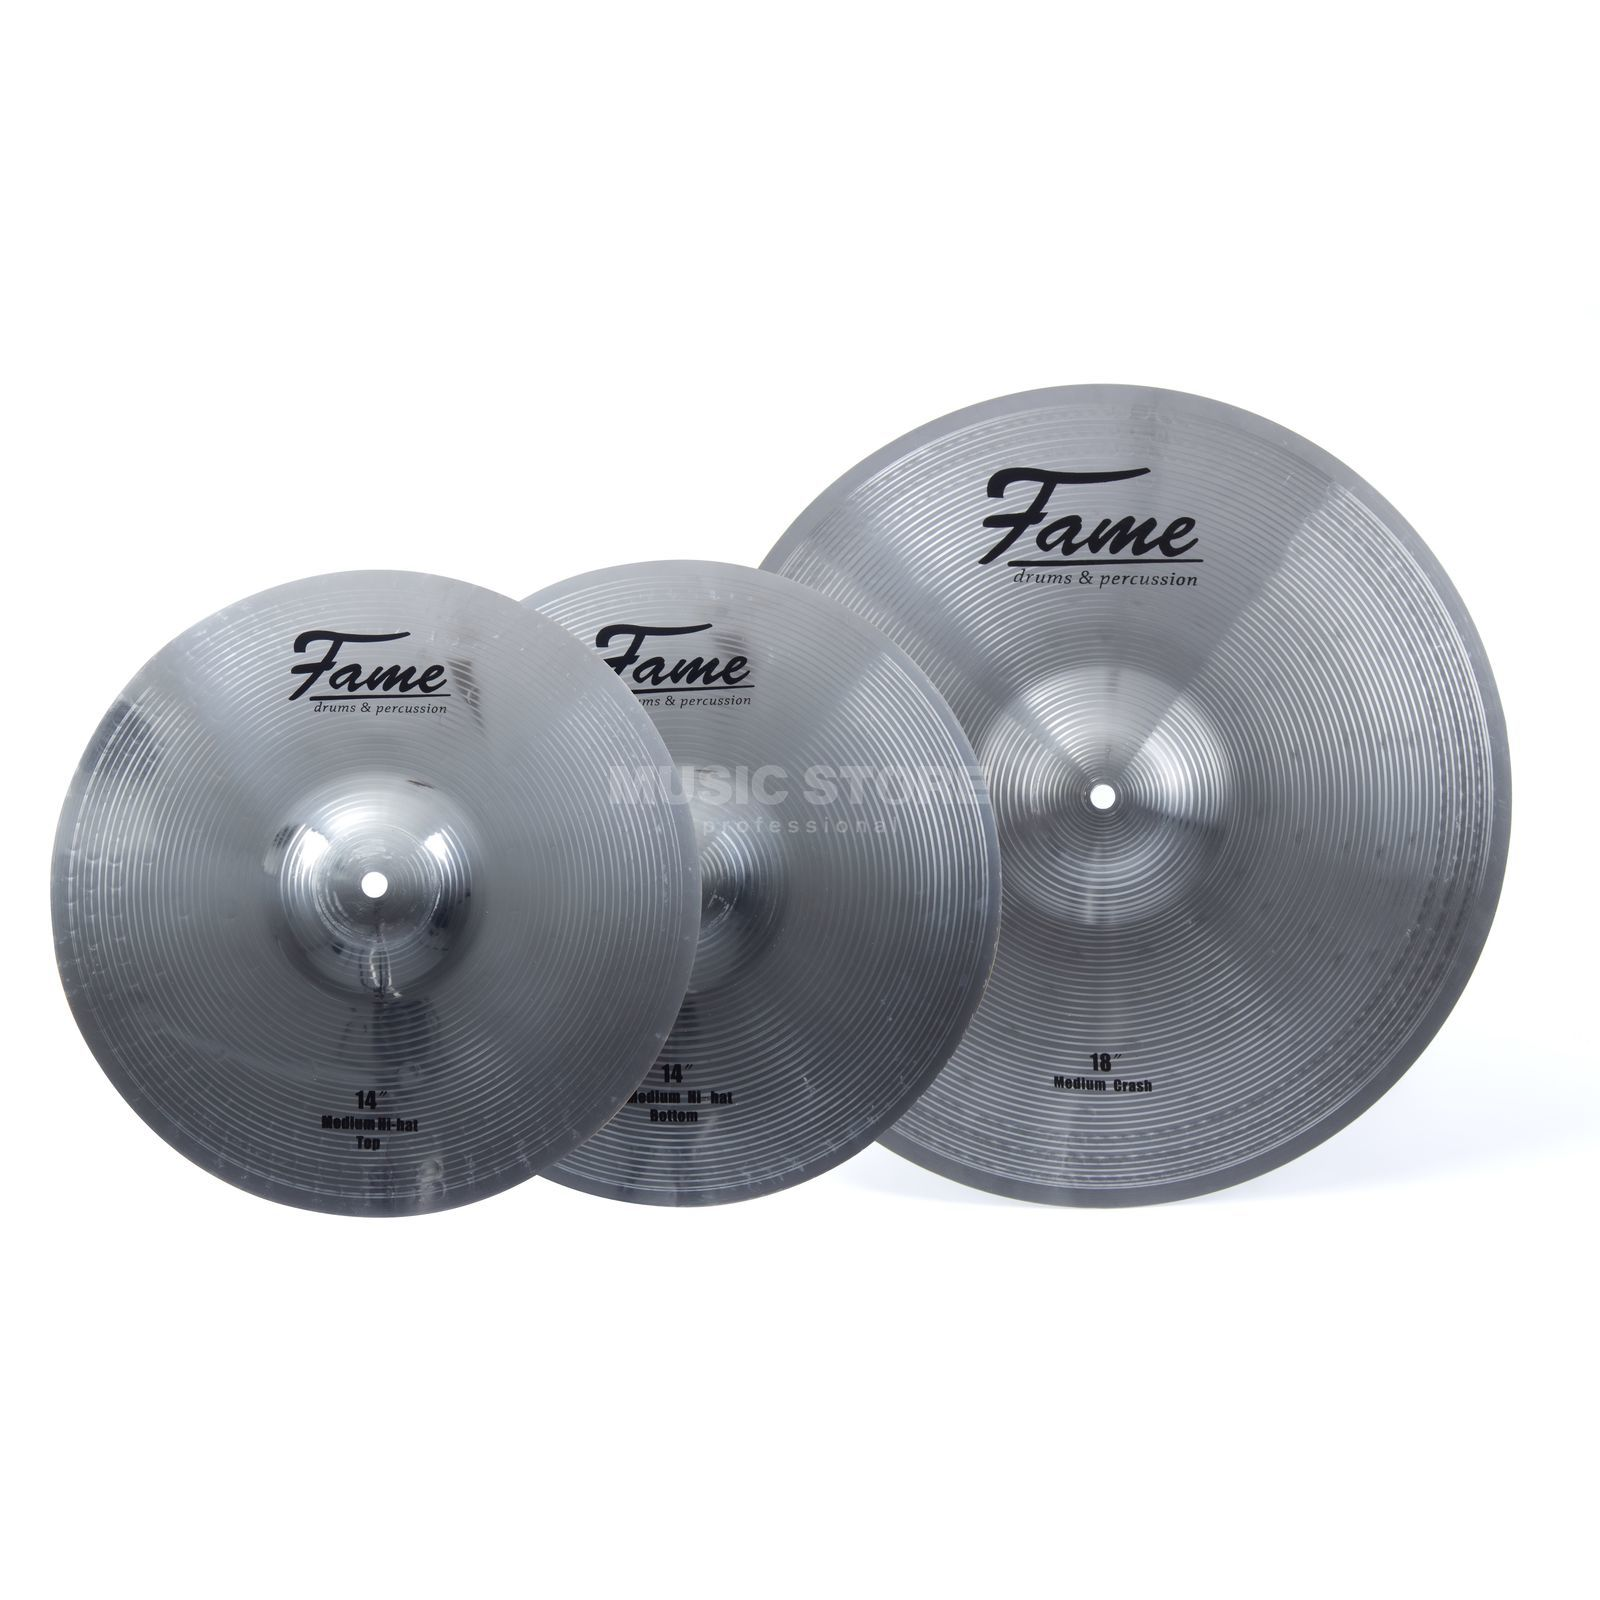 "SET FAME Reflex Cymbal Set IV 18"" Crash-Ride, 14"" HiHat Produktbild"